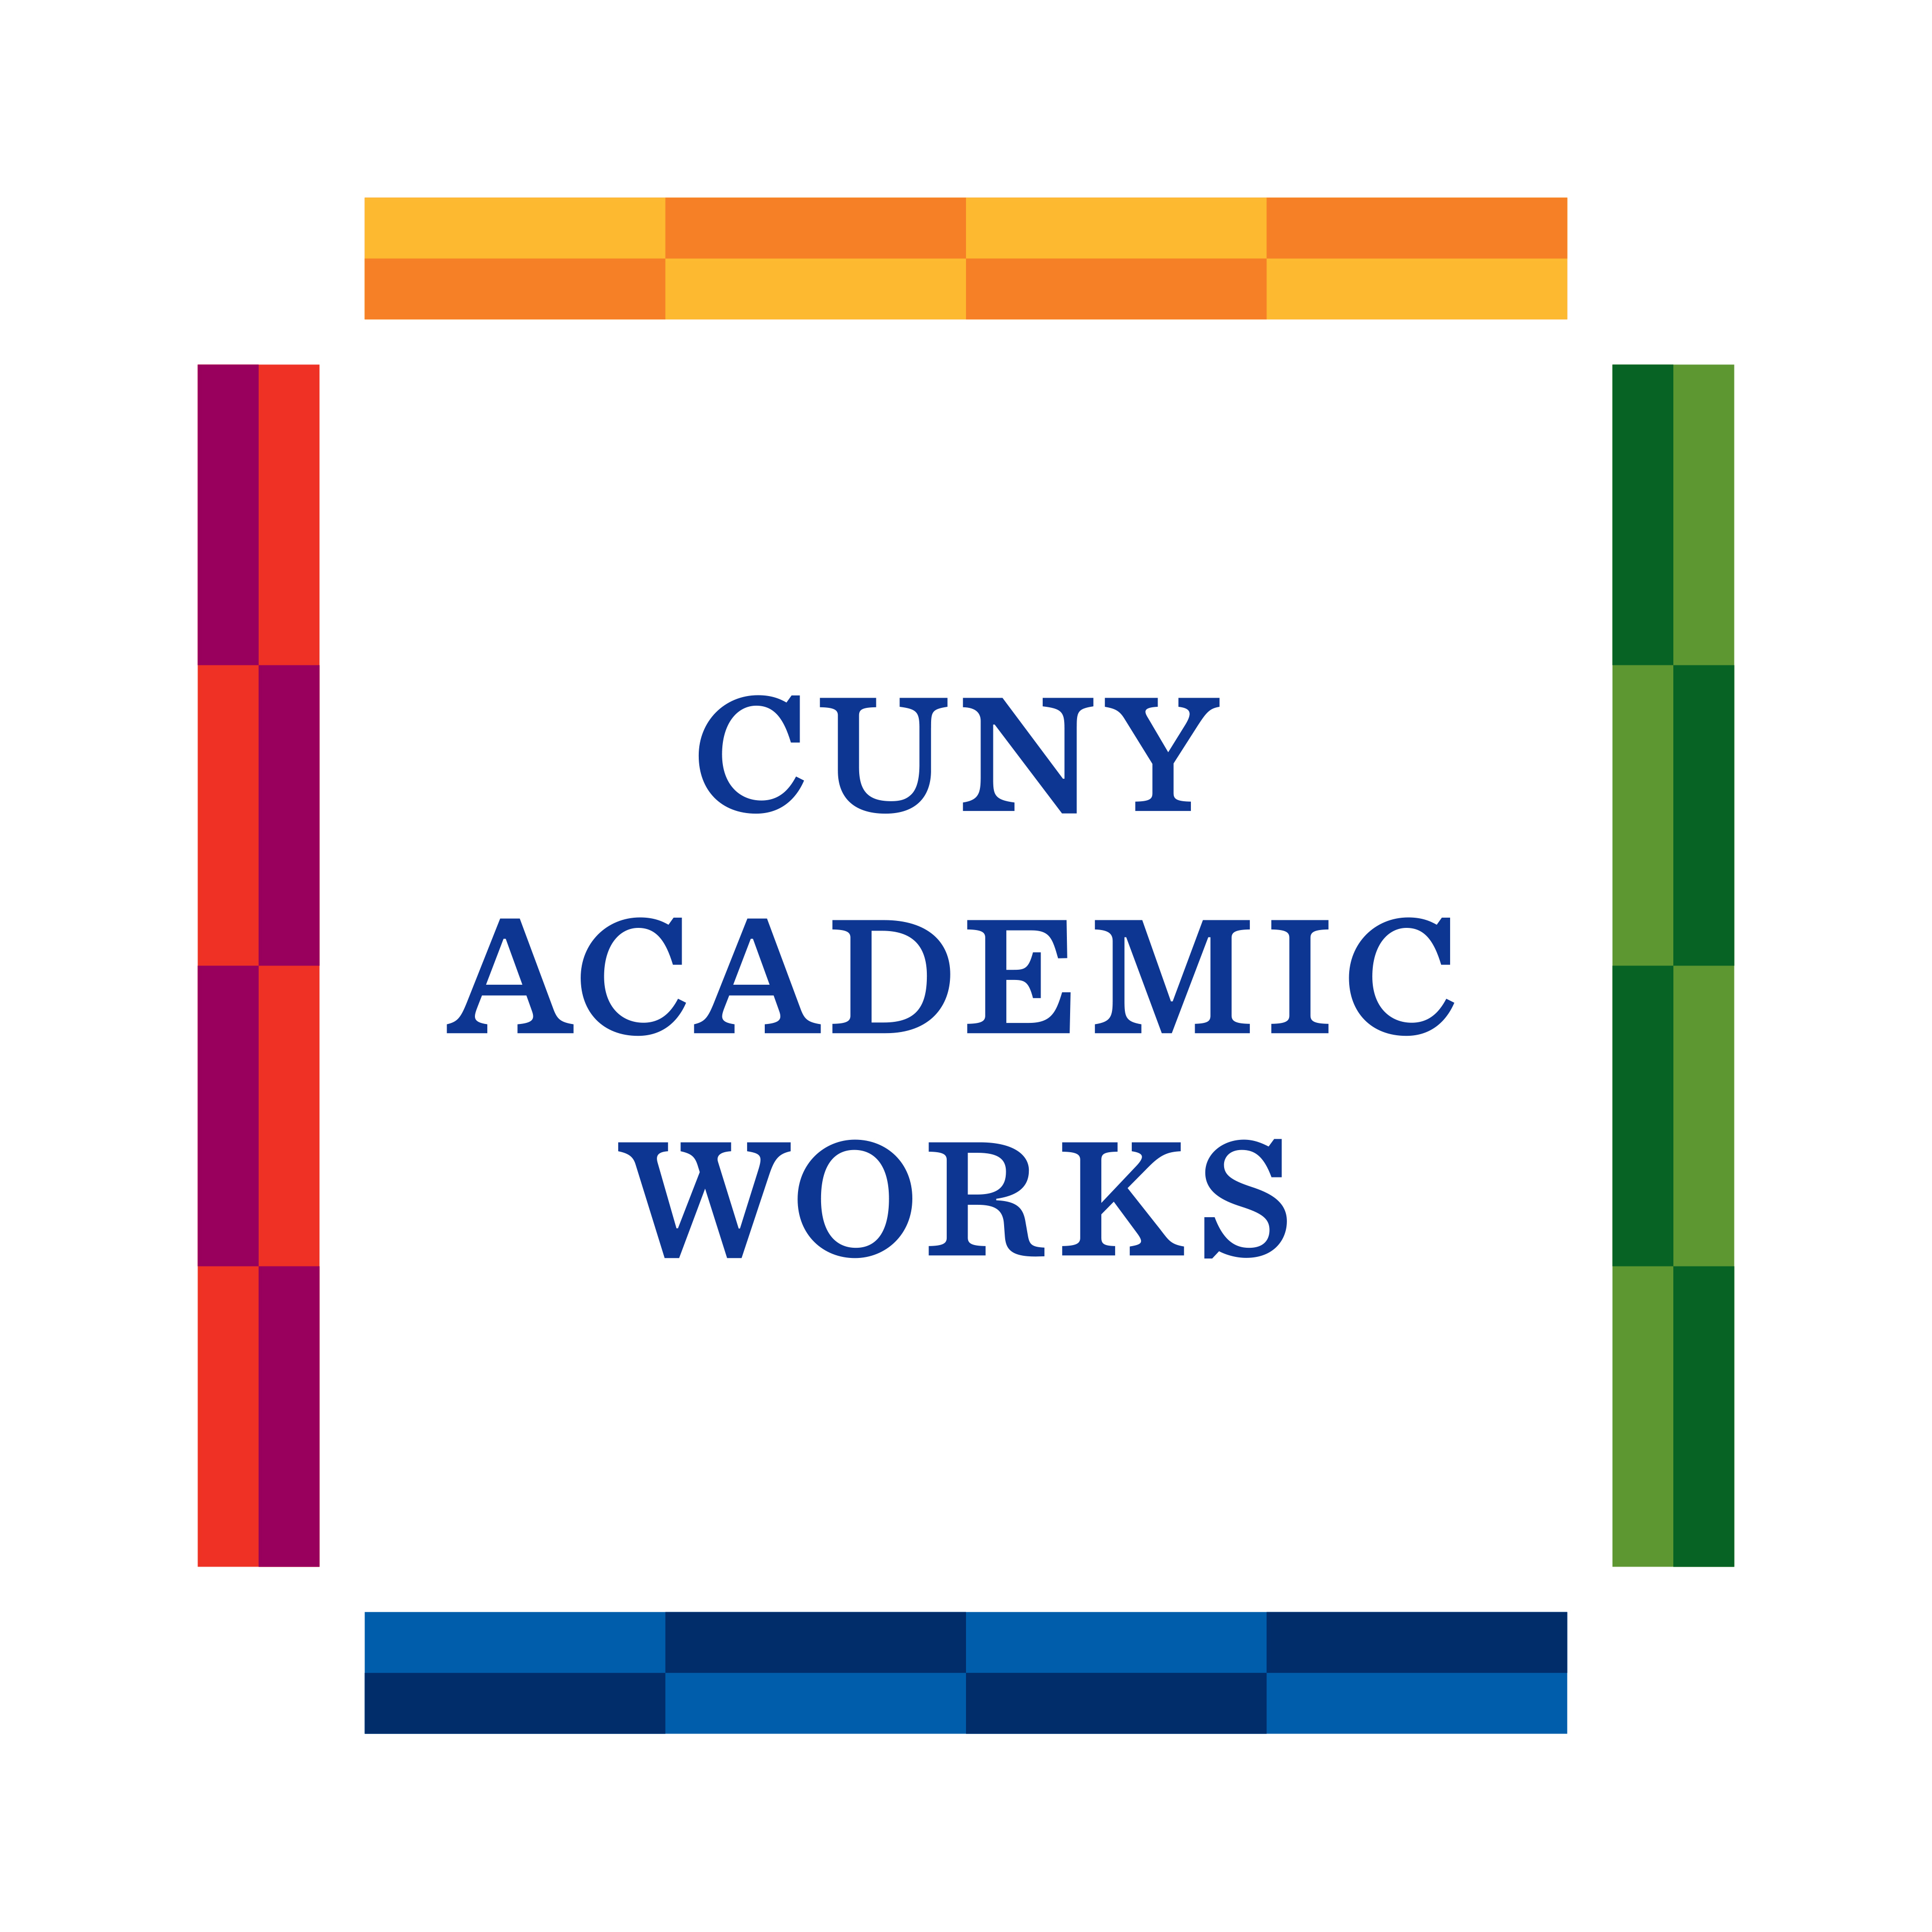 CUNY Academic Works